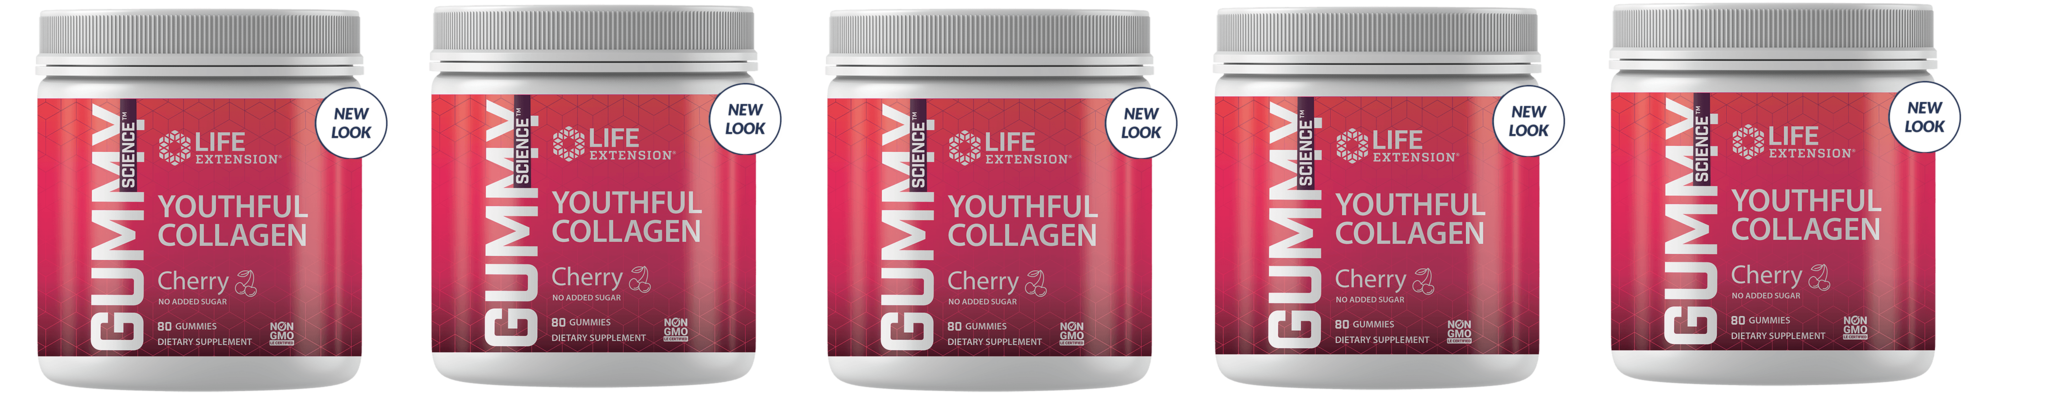 Life Extension Gummy Science™ Youthful Collagen (cherry), 80 Gummies, 5-packs